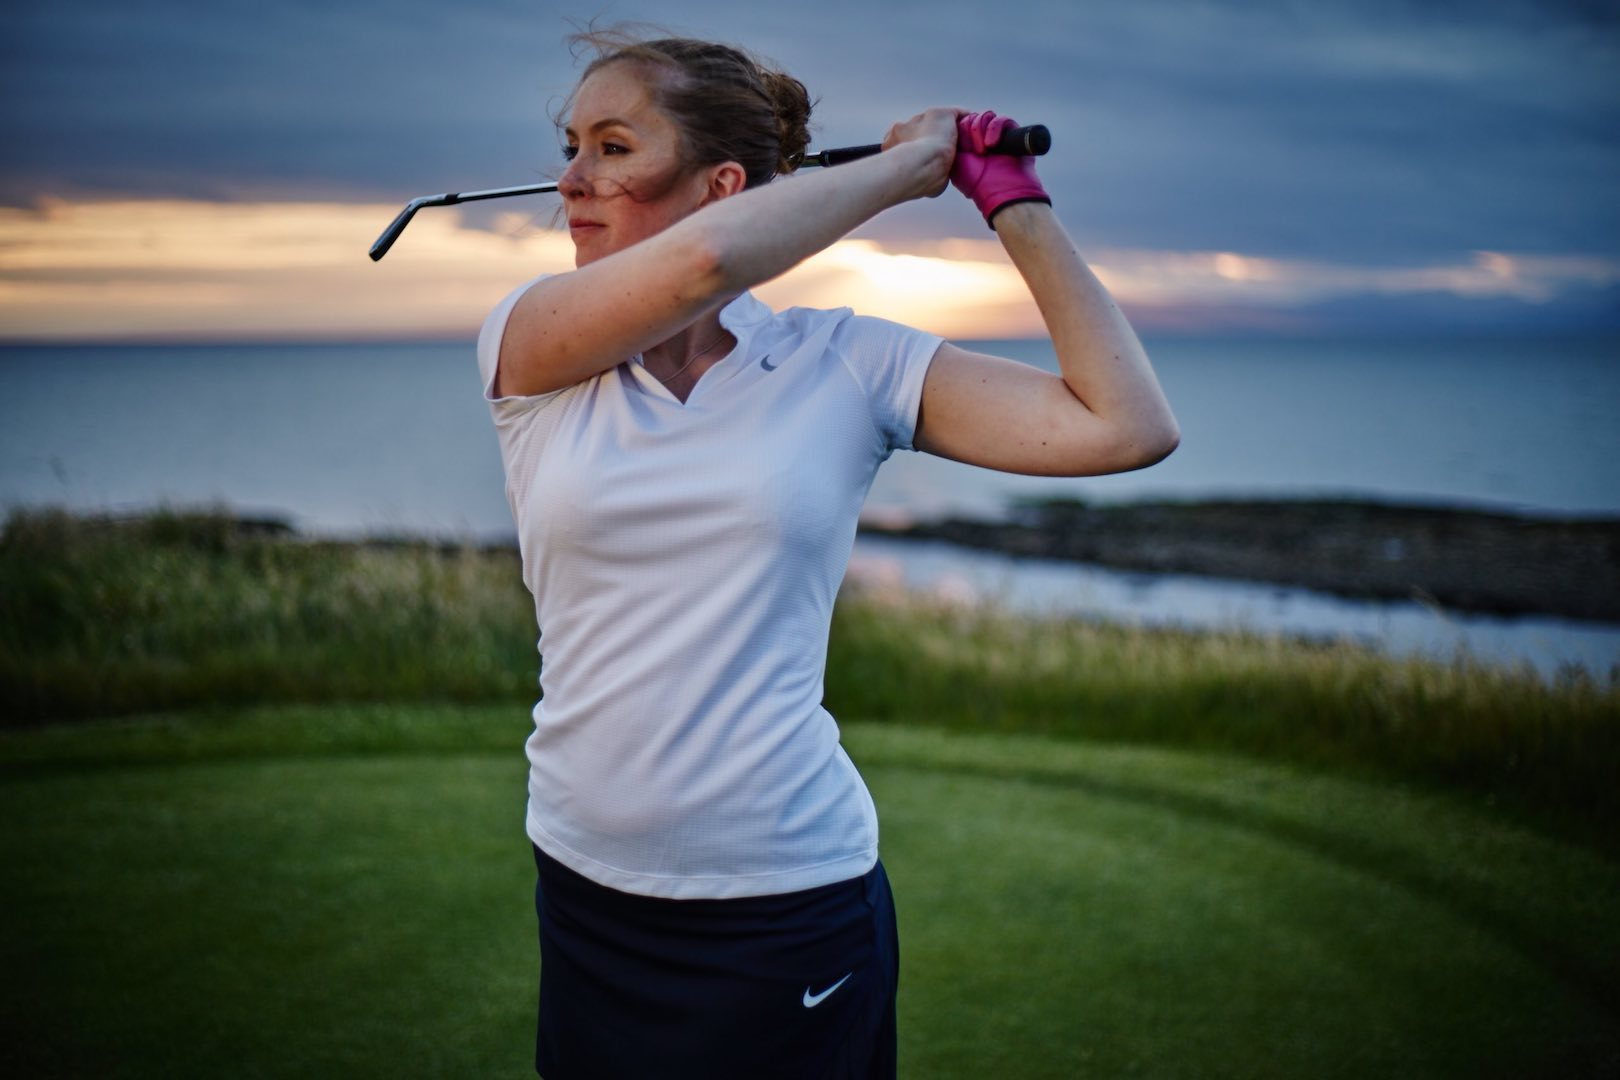 TRENDYGOLF adds the feminine touch